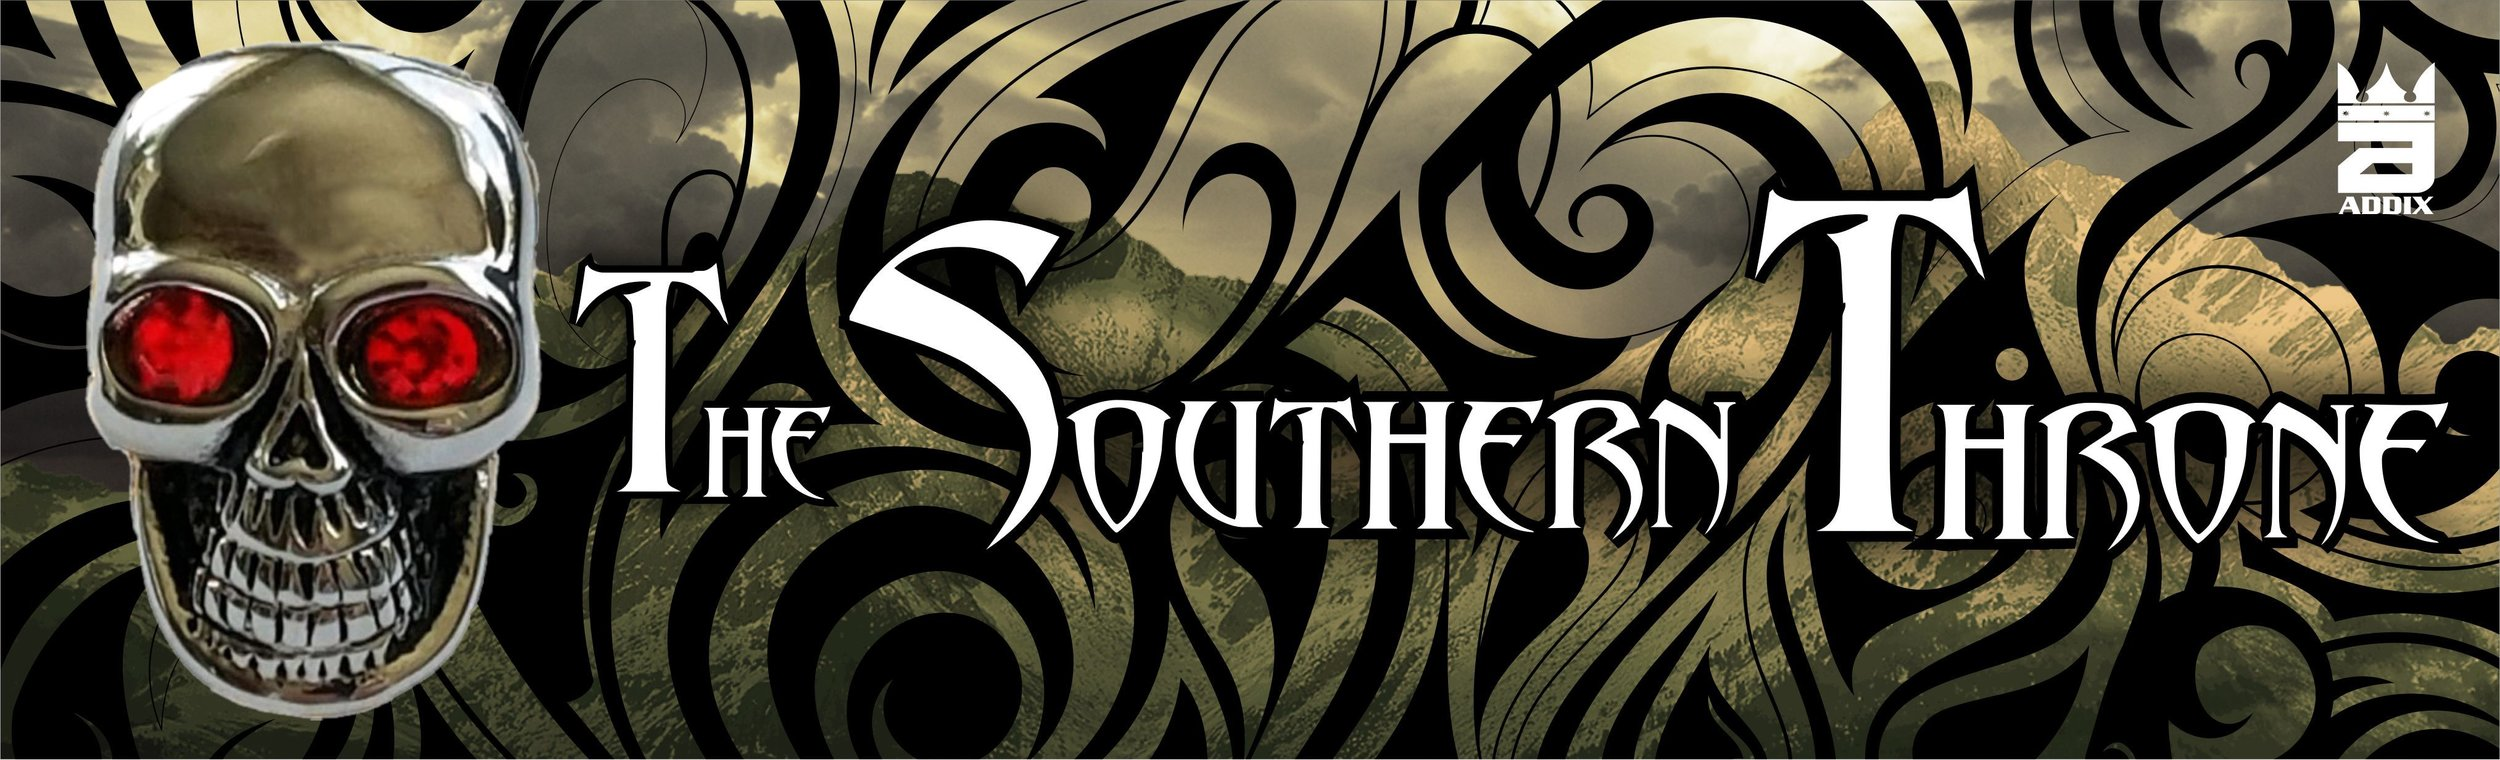 Southern Throne_2018_4-18_EP_Online Store Tile.jpg